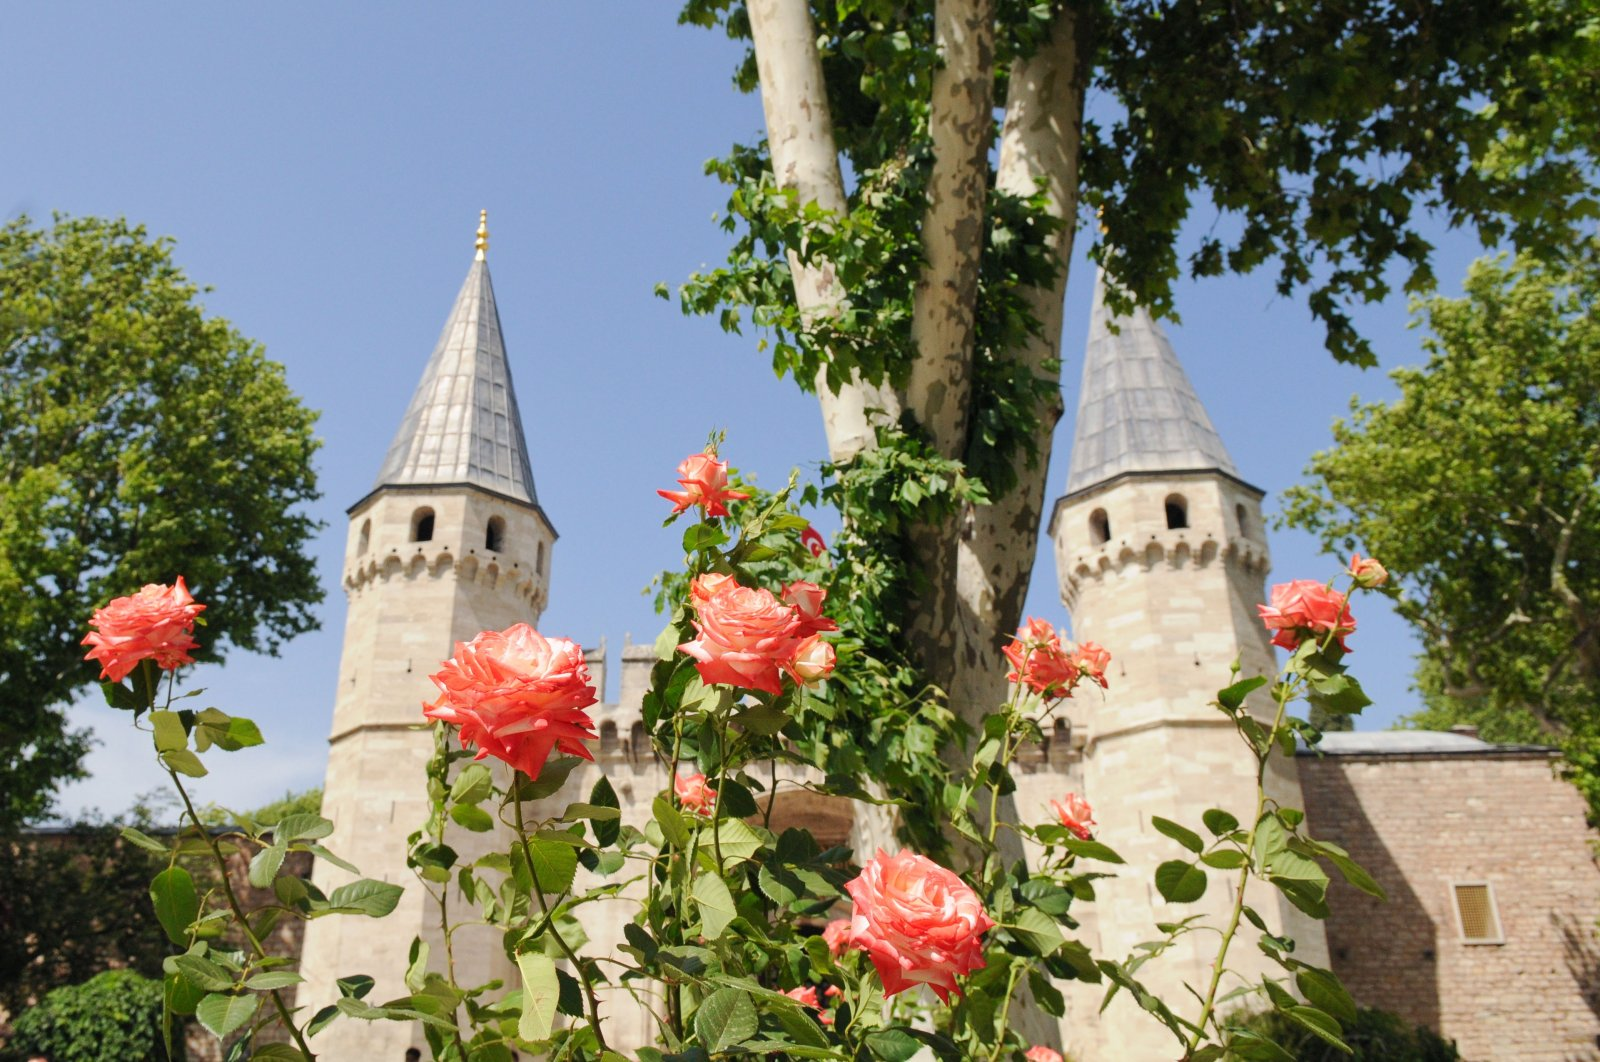 A view from Topkapı Palace with roses, Istanbul, Turkey.